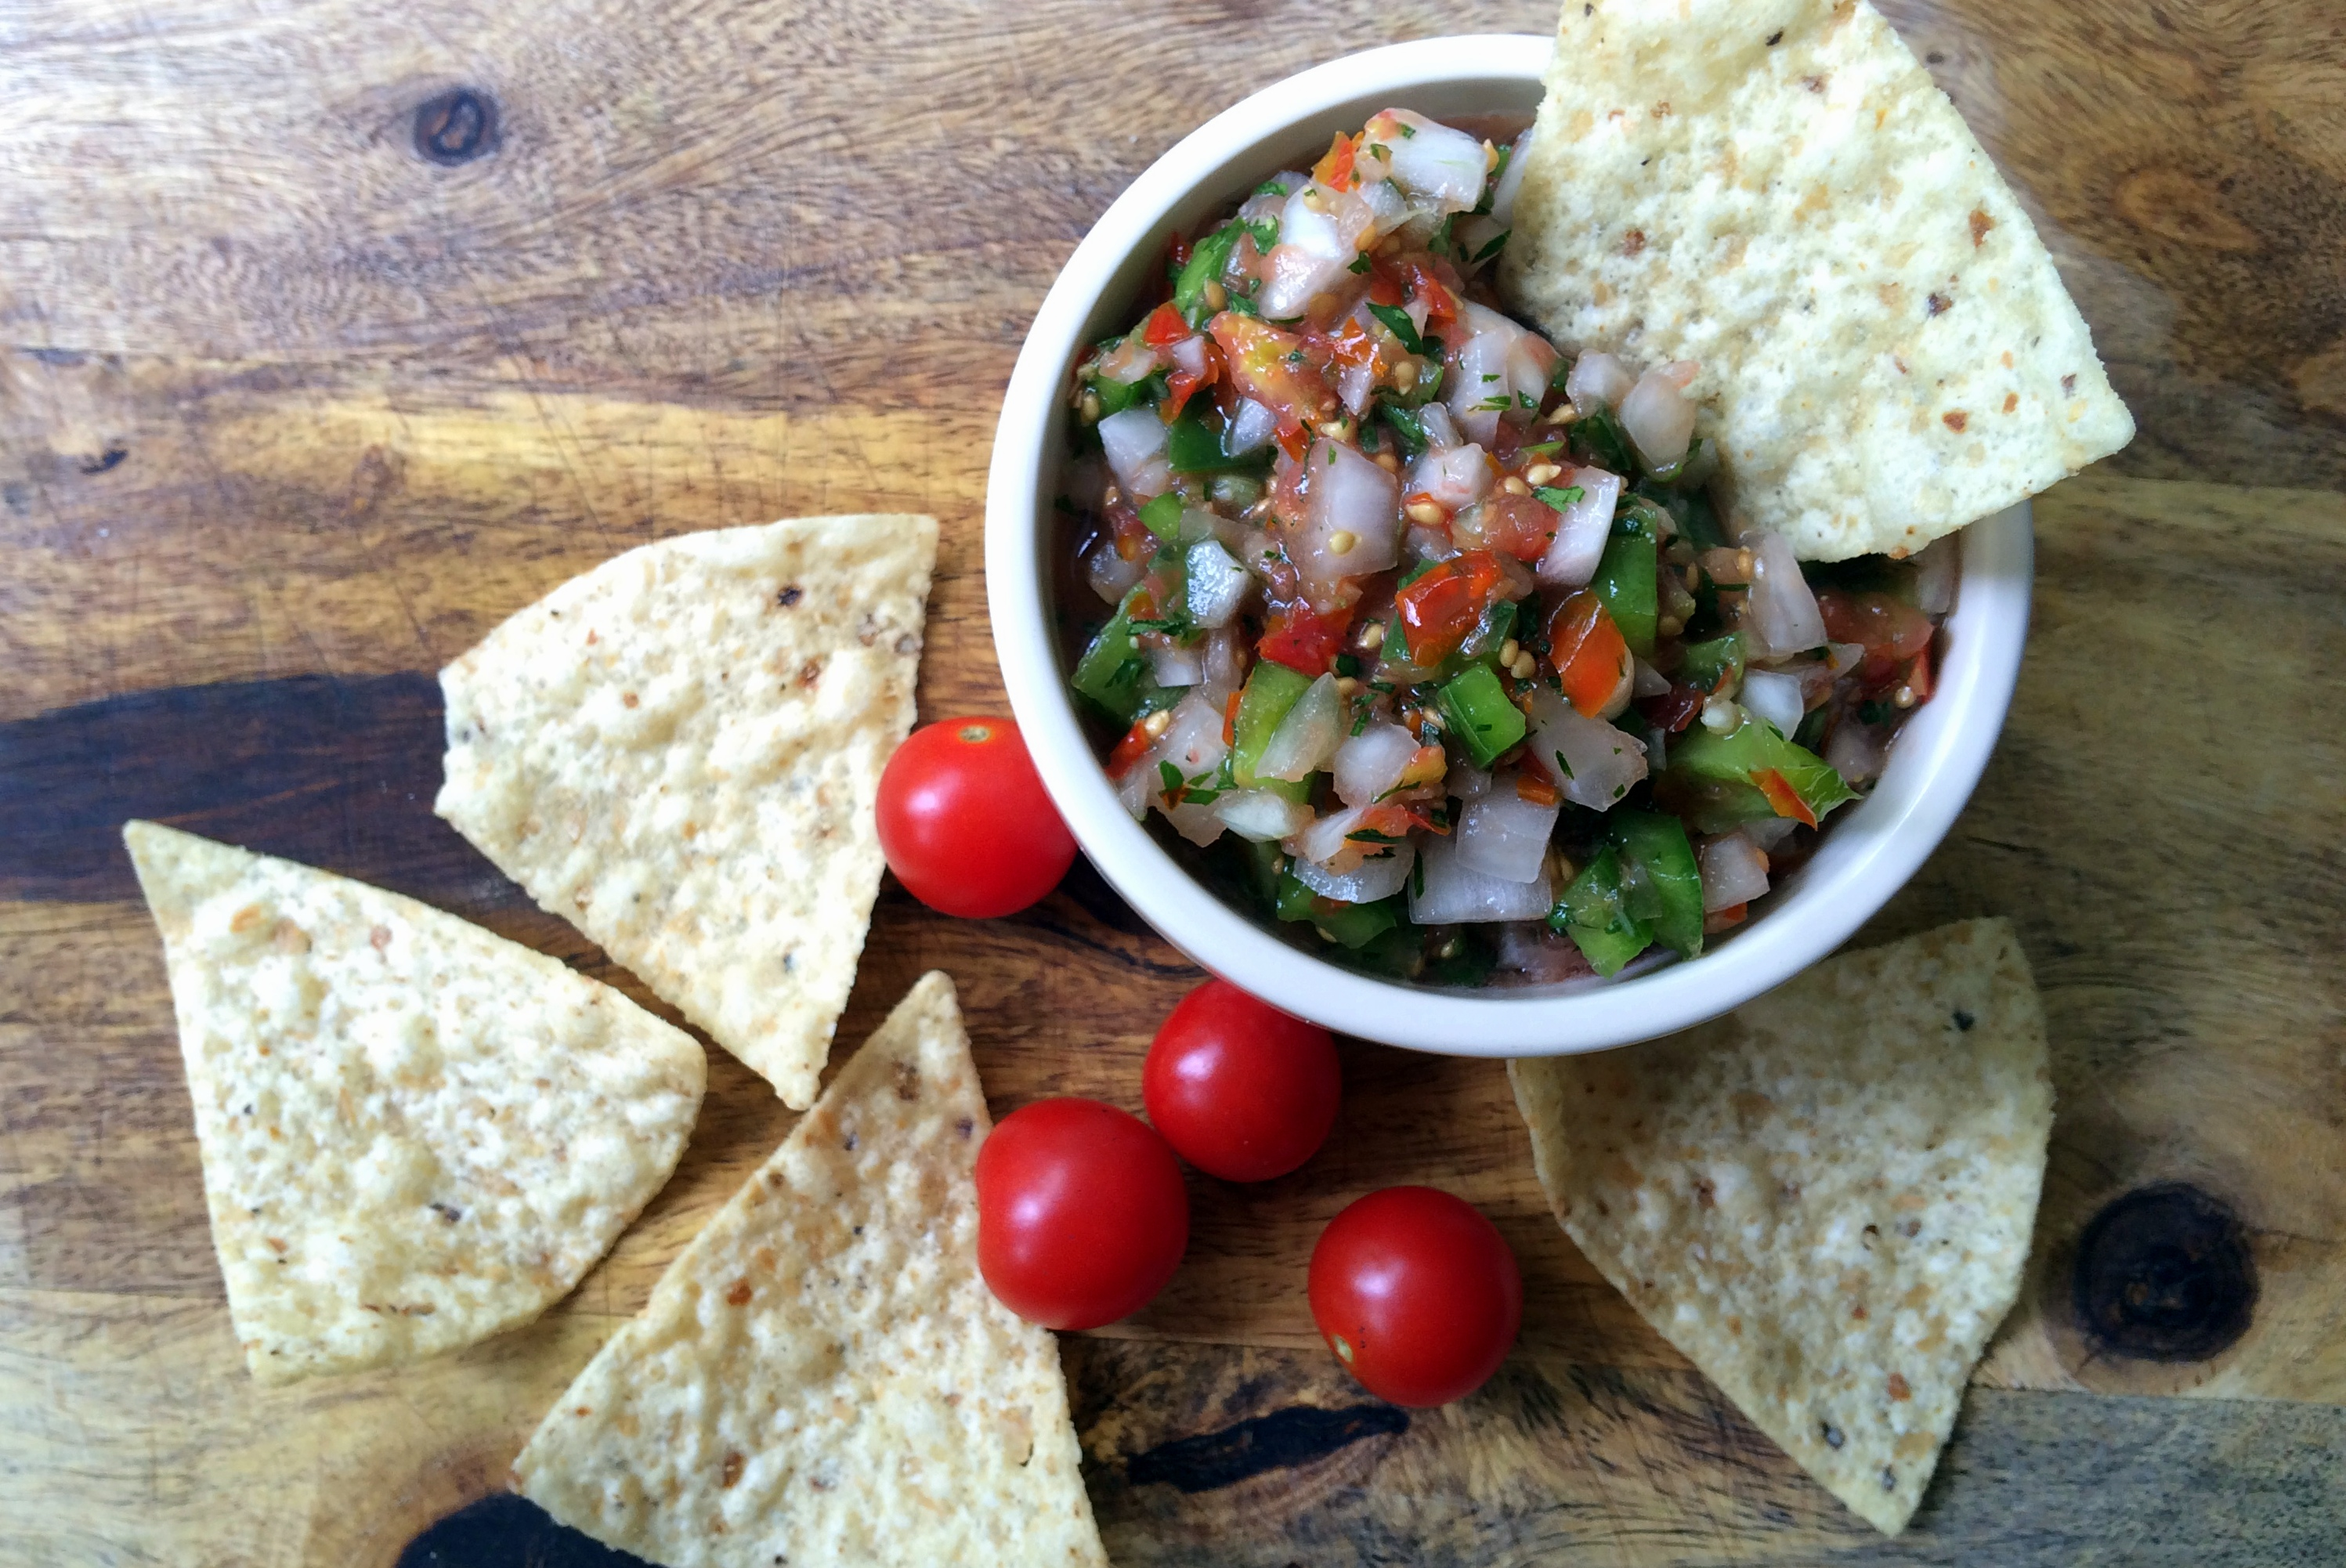 Homemade salsa fresh from the garden